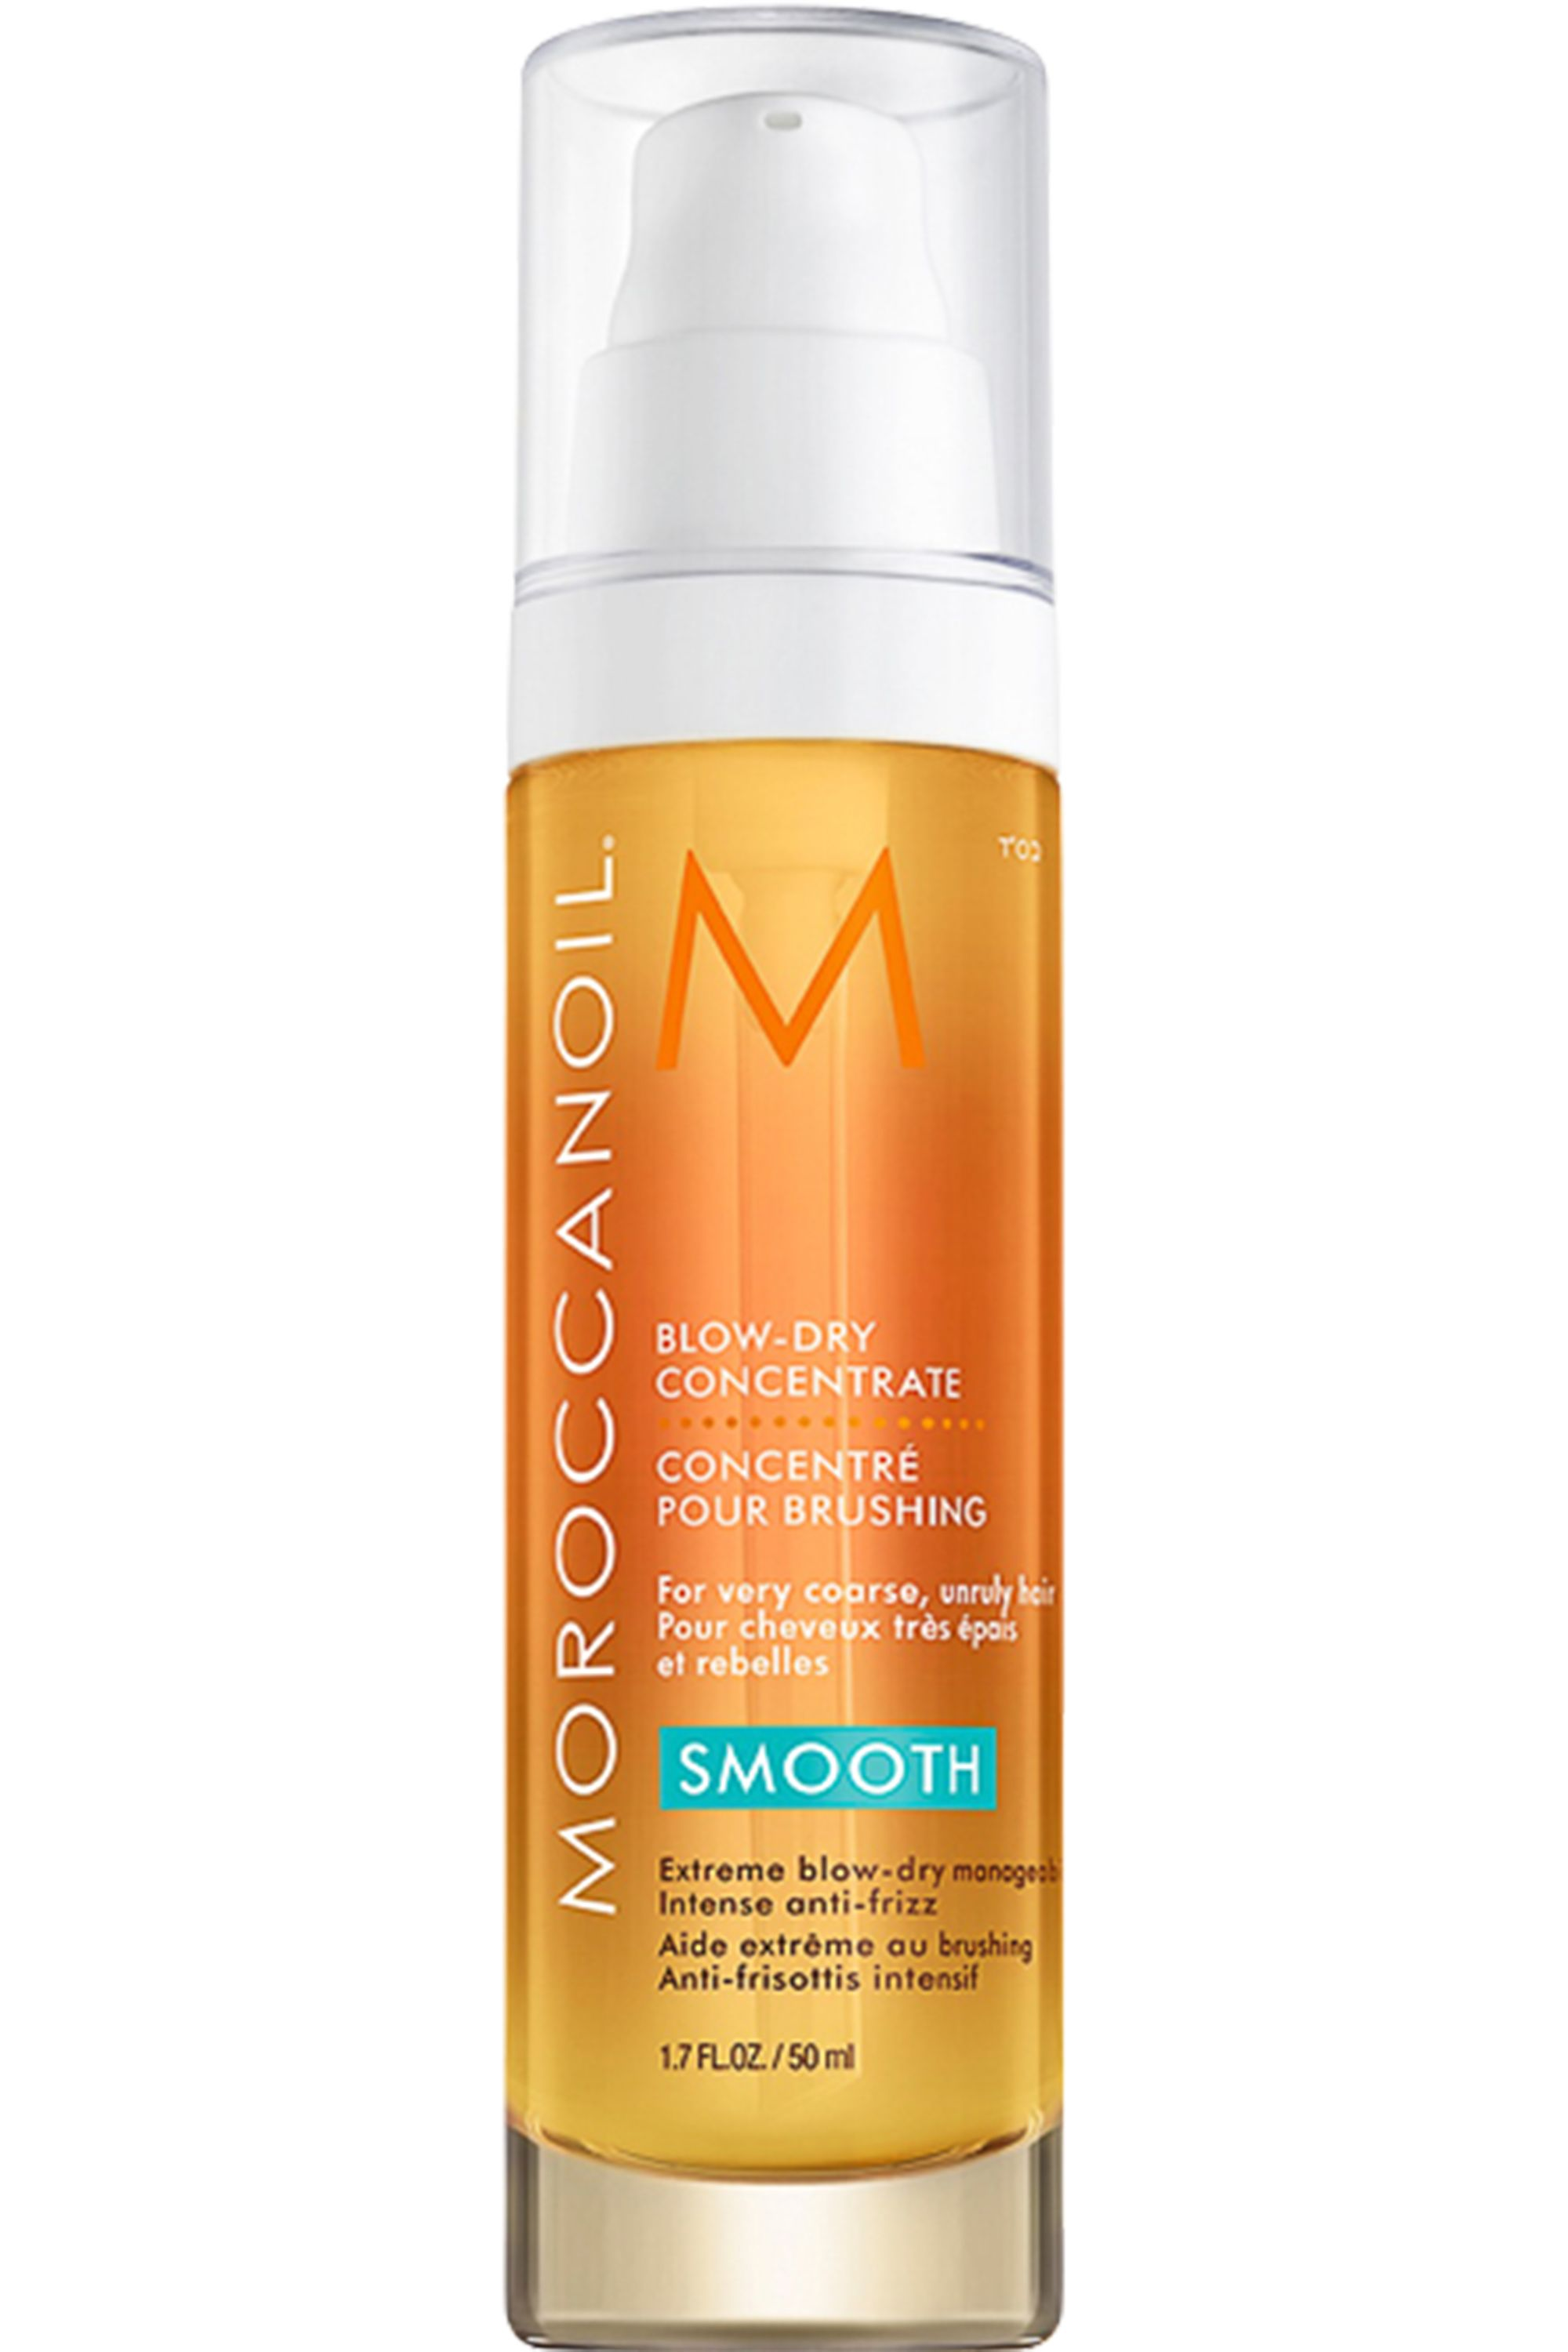 Blissim : Moroccanoil - Concentré Brushing - Concentré Brushing